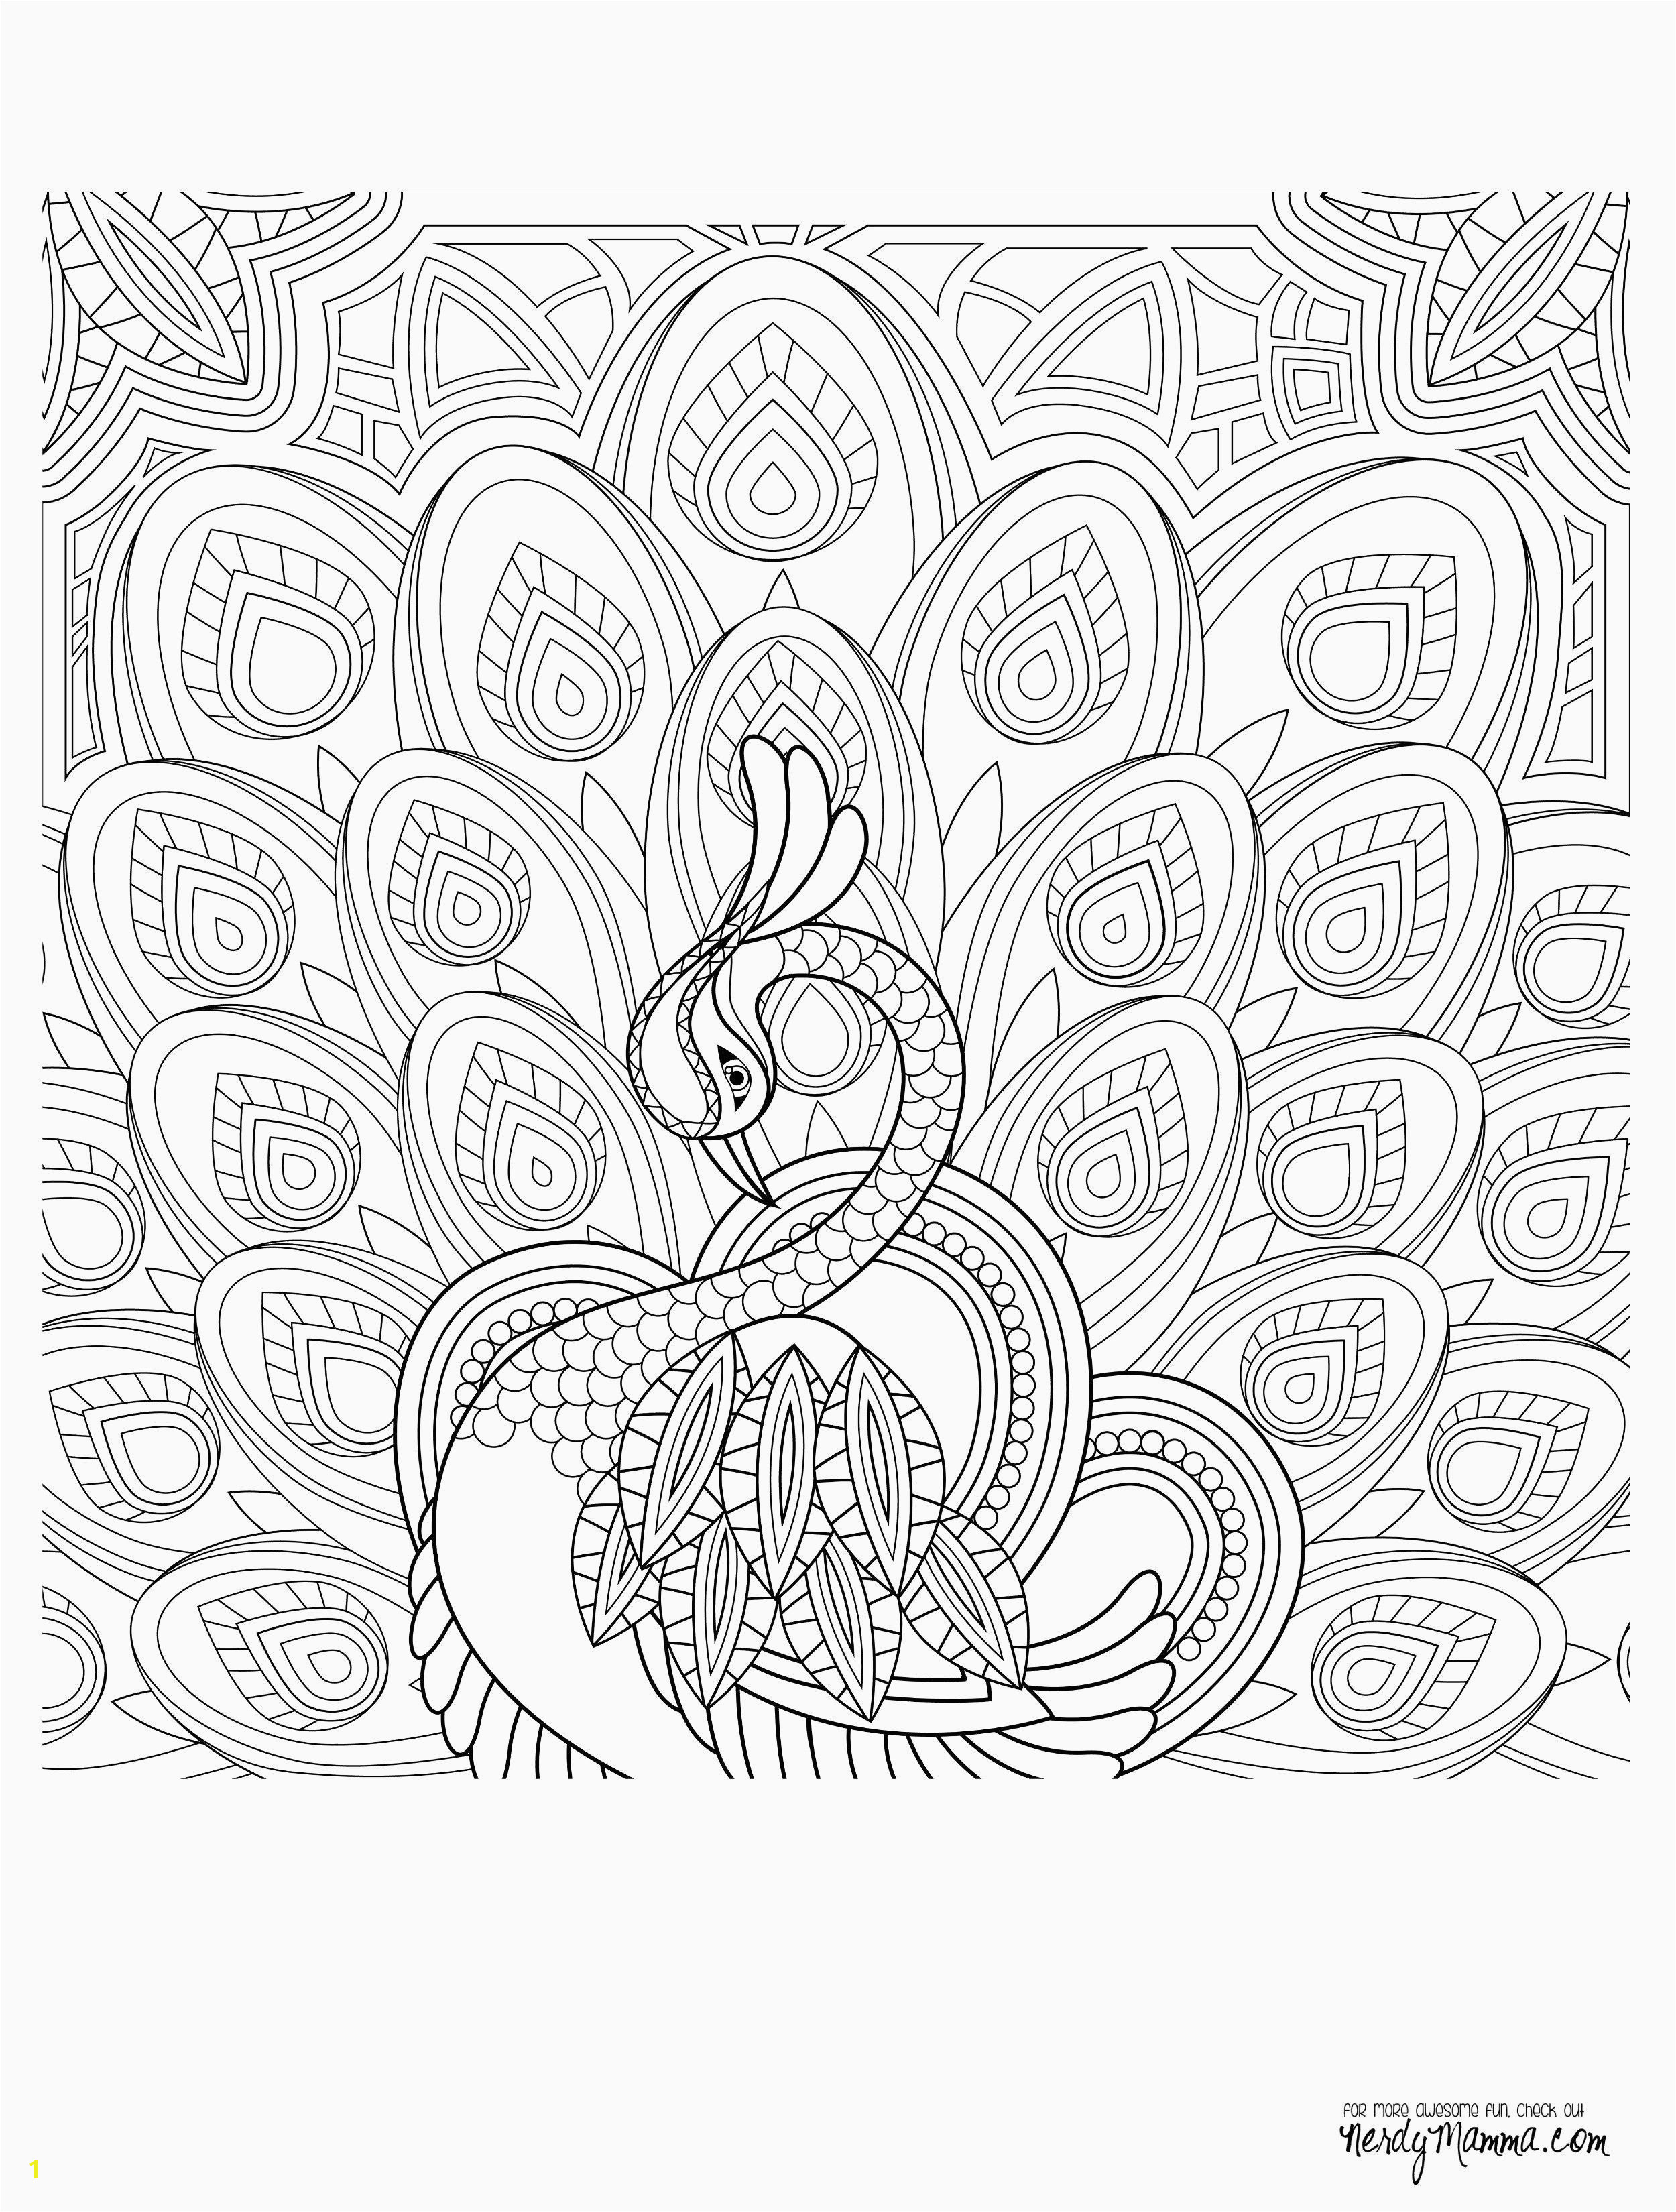 New Free Printable Landscape Coloring Pages For Adults Coloring